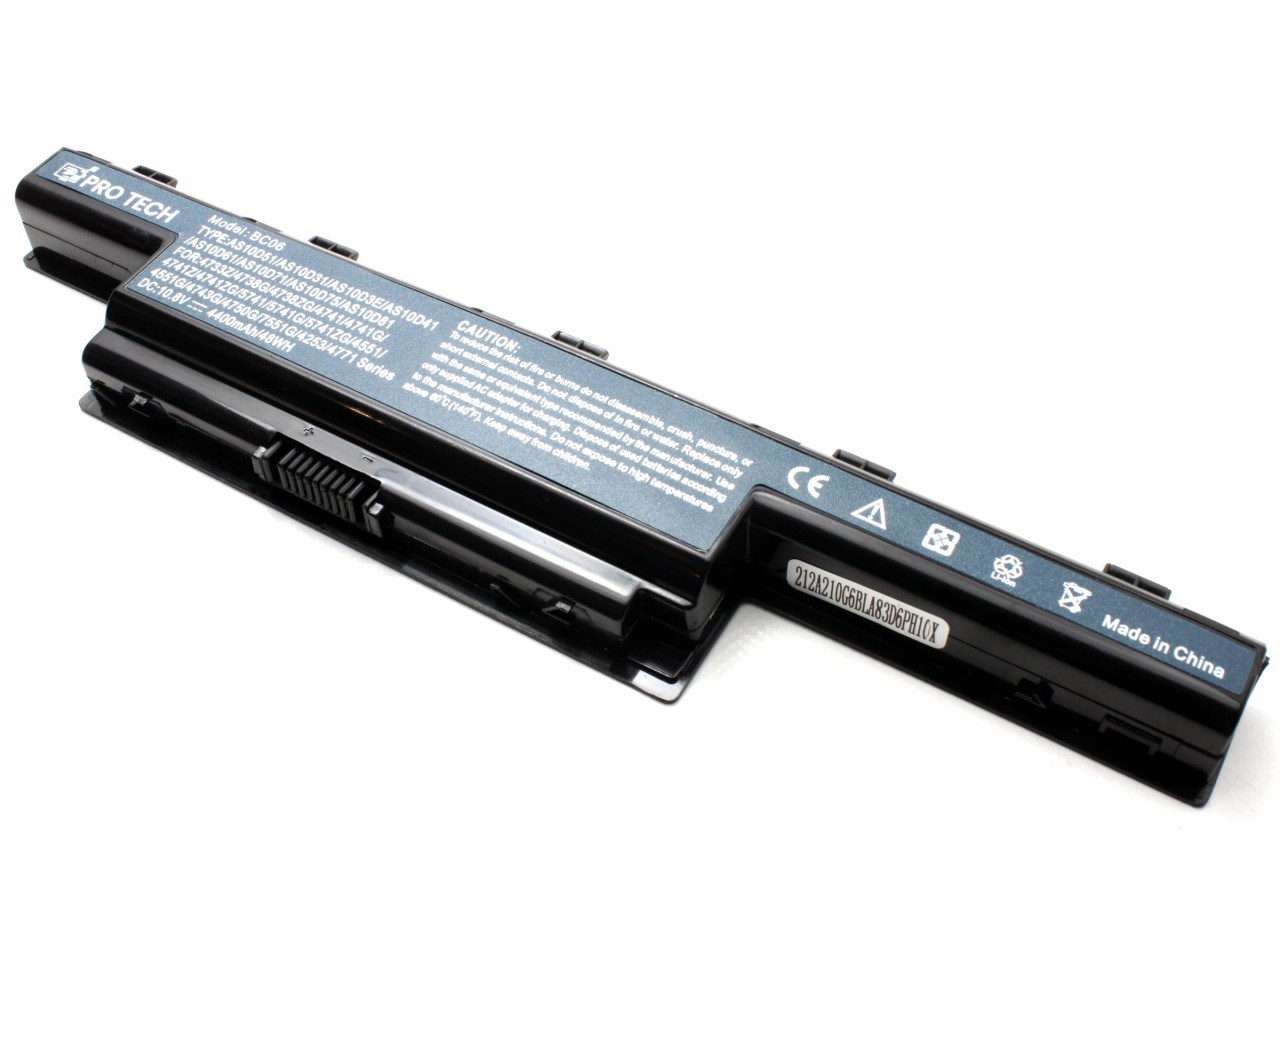 Baterie Packard Bell EasyNote TS11 6 celule imagine powerlaptop.ro 2021